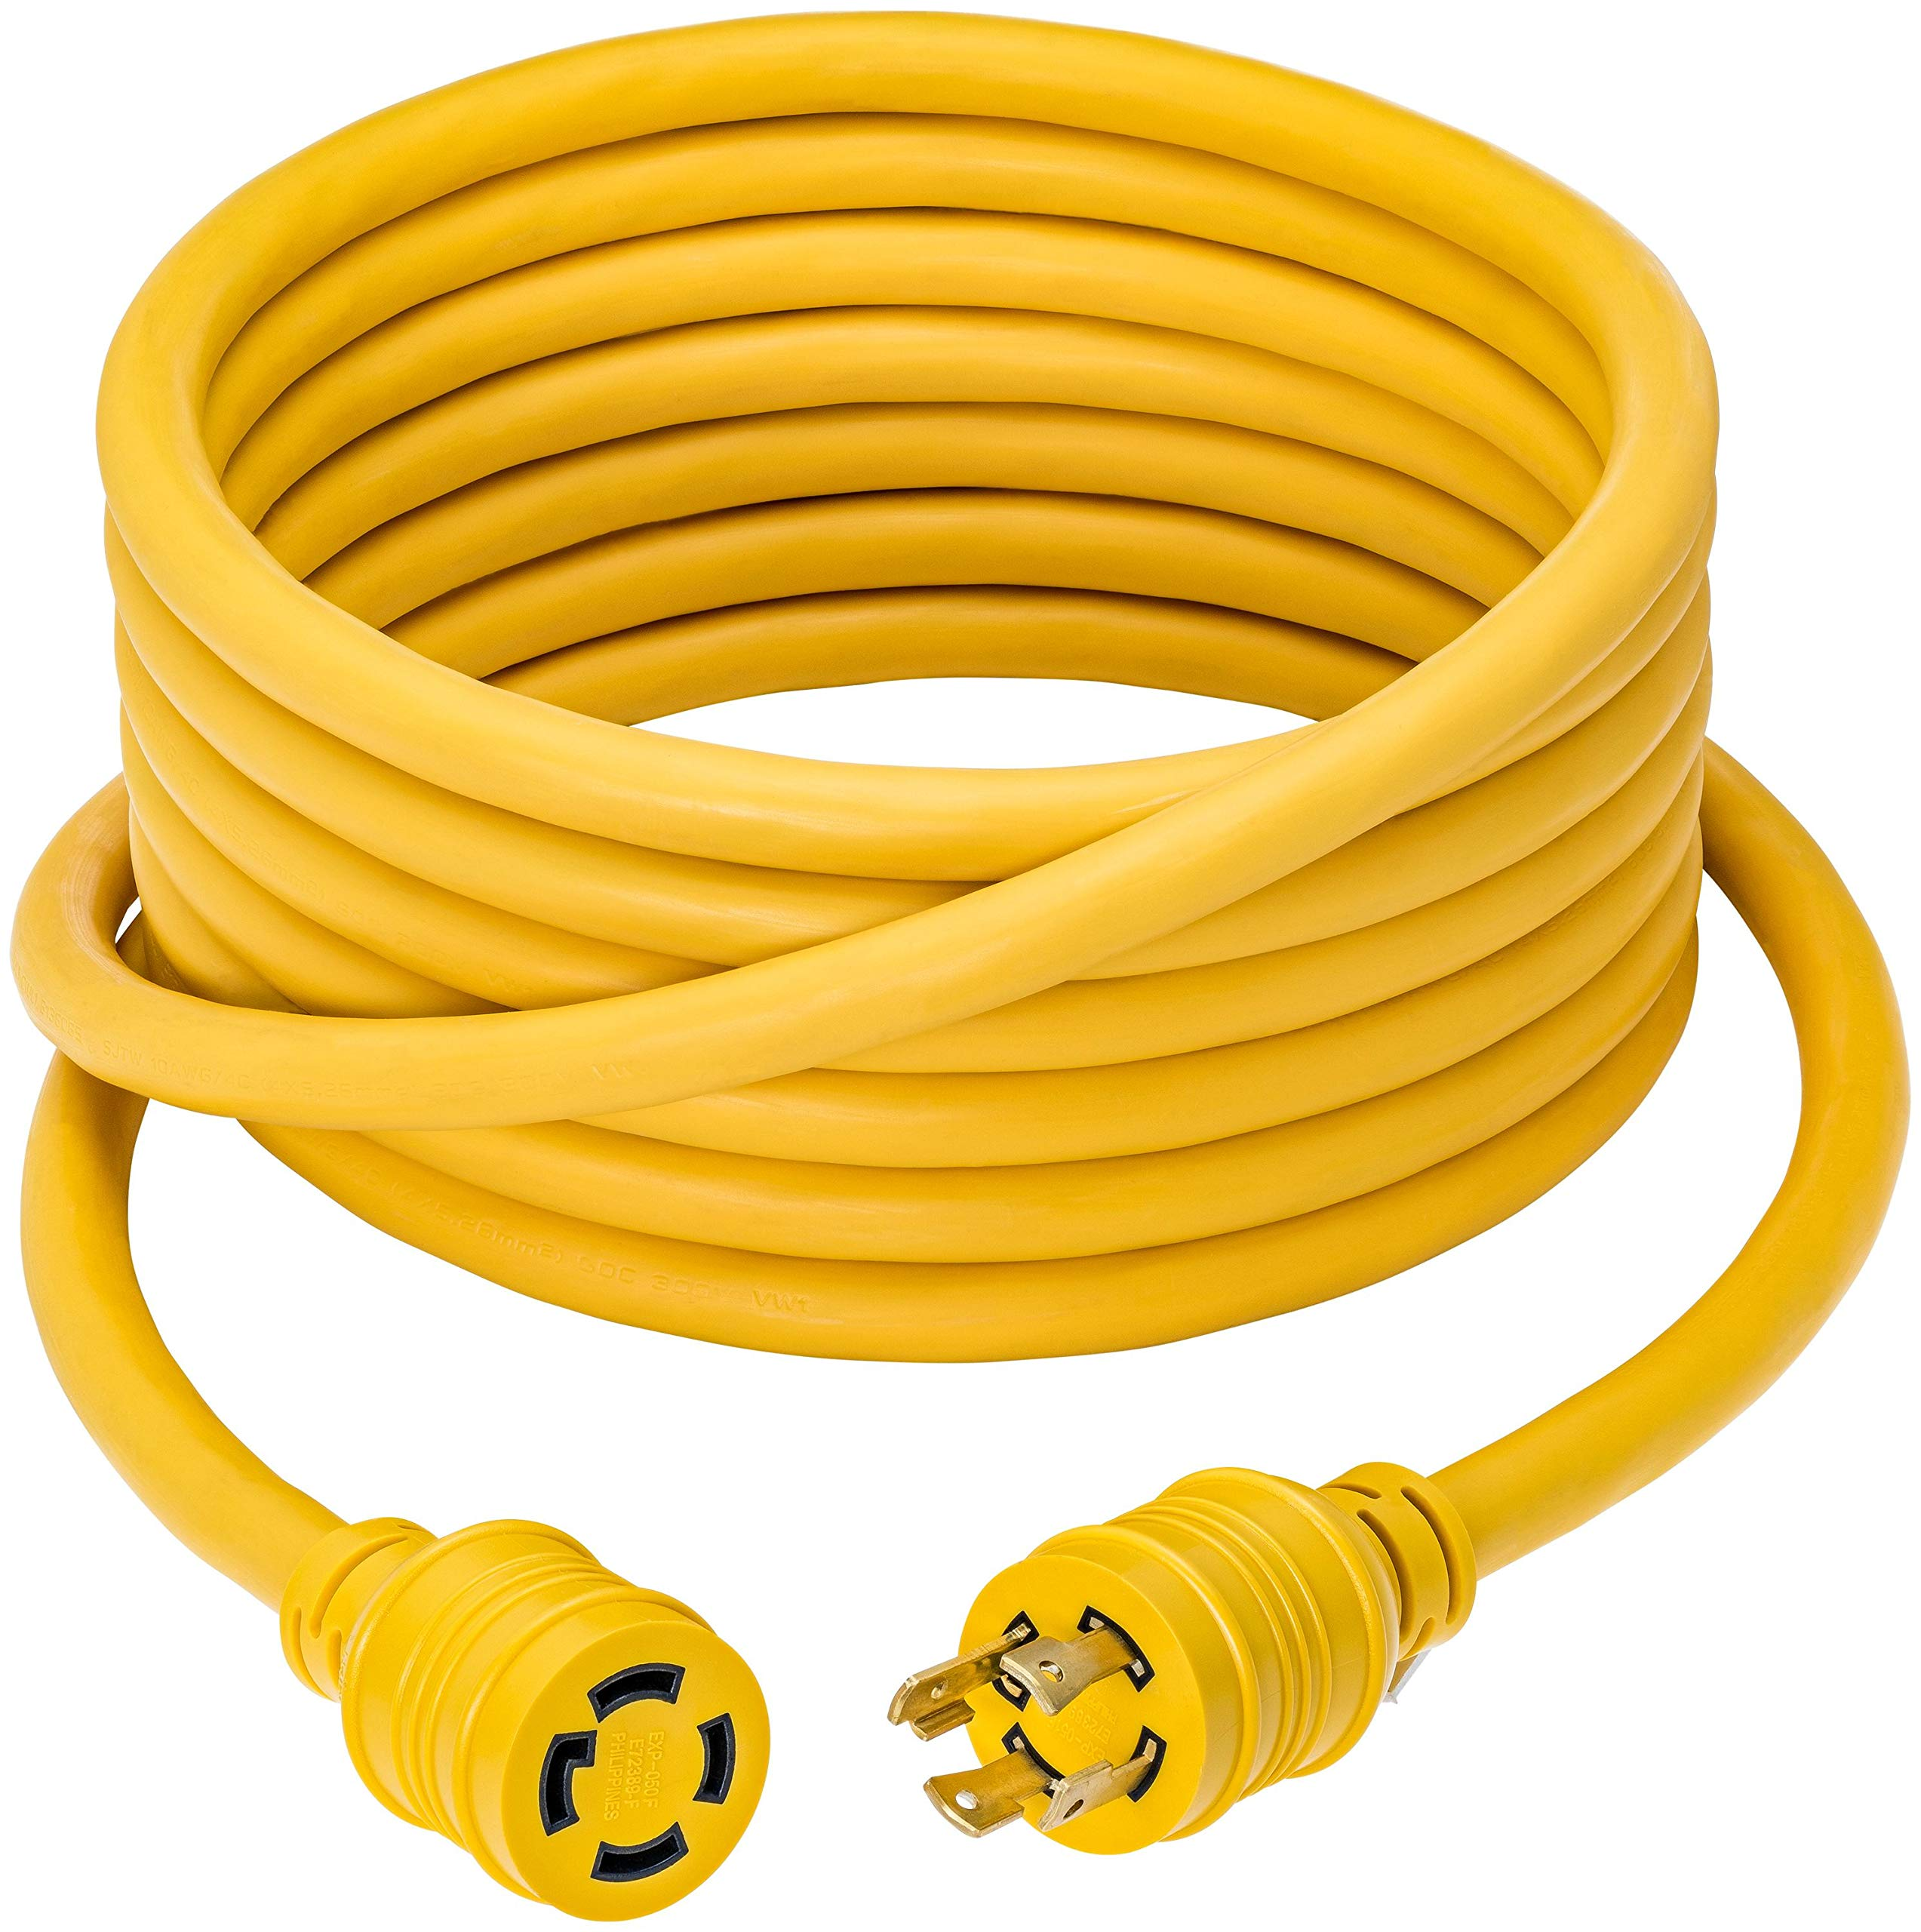 50 Foot Heavy Duty Generator Locking Power Cord NEMA L14-30P/L14-30R,4 Prong 10 Gauge SJTW Cable, 125/250V 30Amp 7500 Watts Yellow Generator Lock Extension Cord with UL Listed Magellan